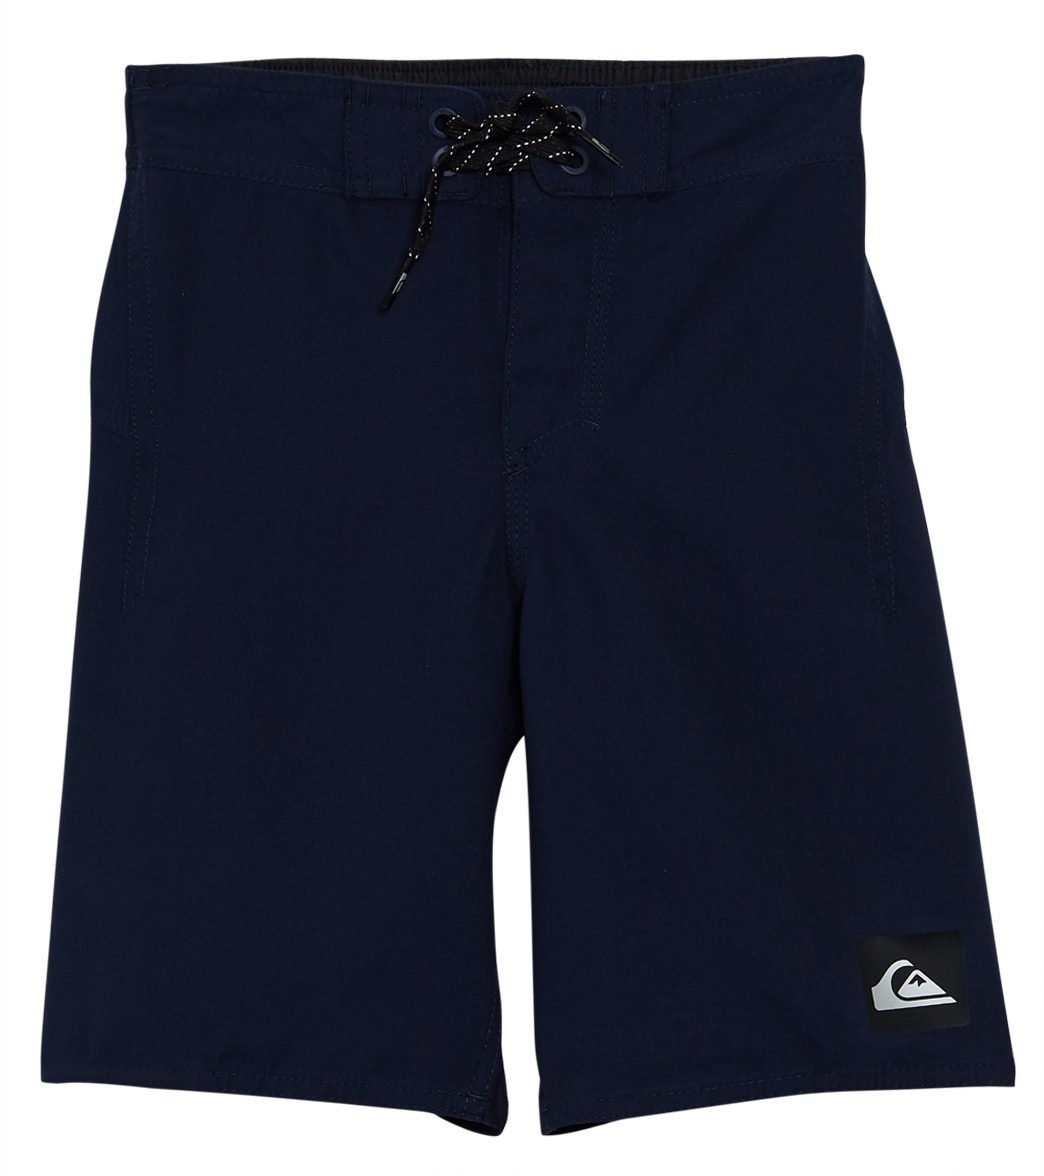 Quiksilver Boys Board Shorts